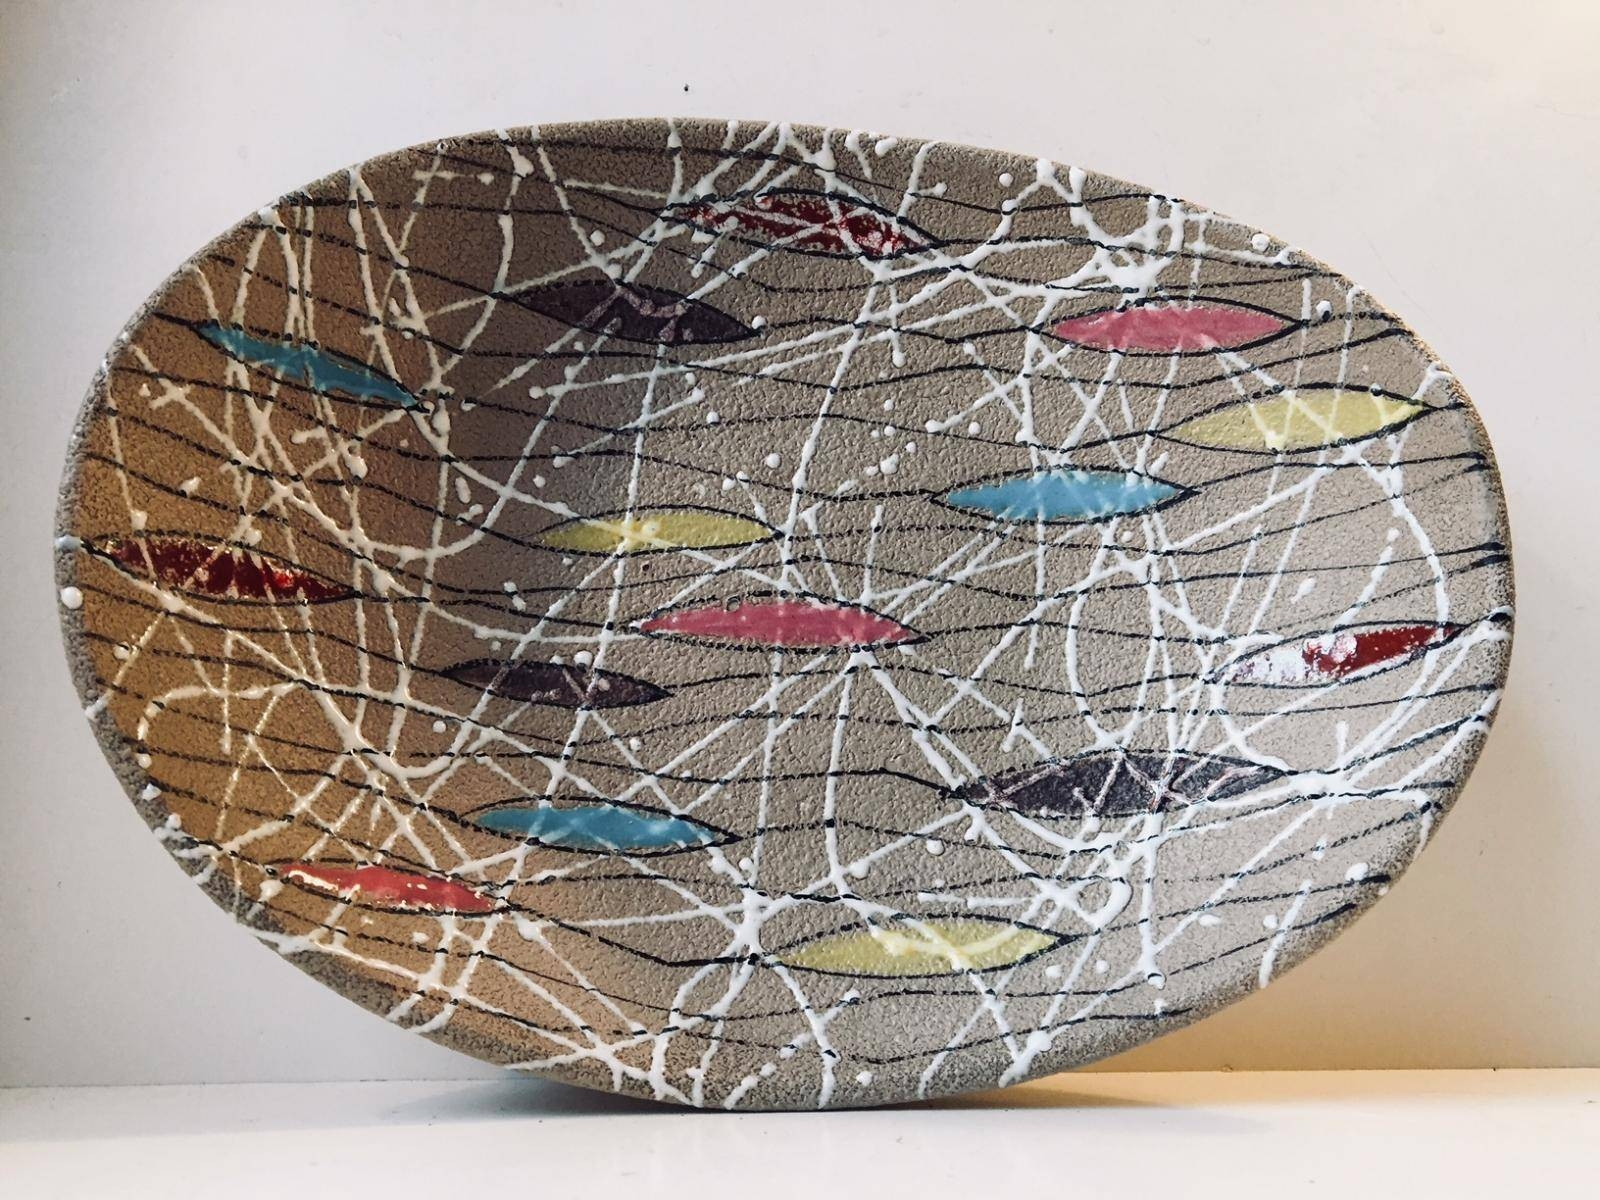 Multicolored Italian Modernist Ceramic Bowlfratelli Intended For Current Italian Ceramic Wall Art (Gallery 12 of 30)